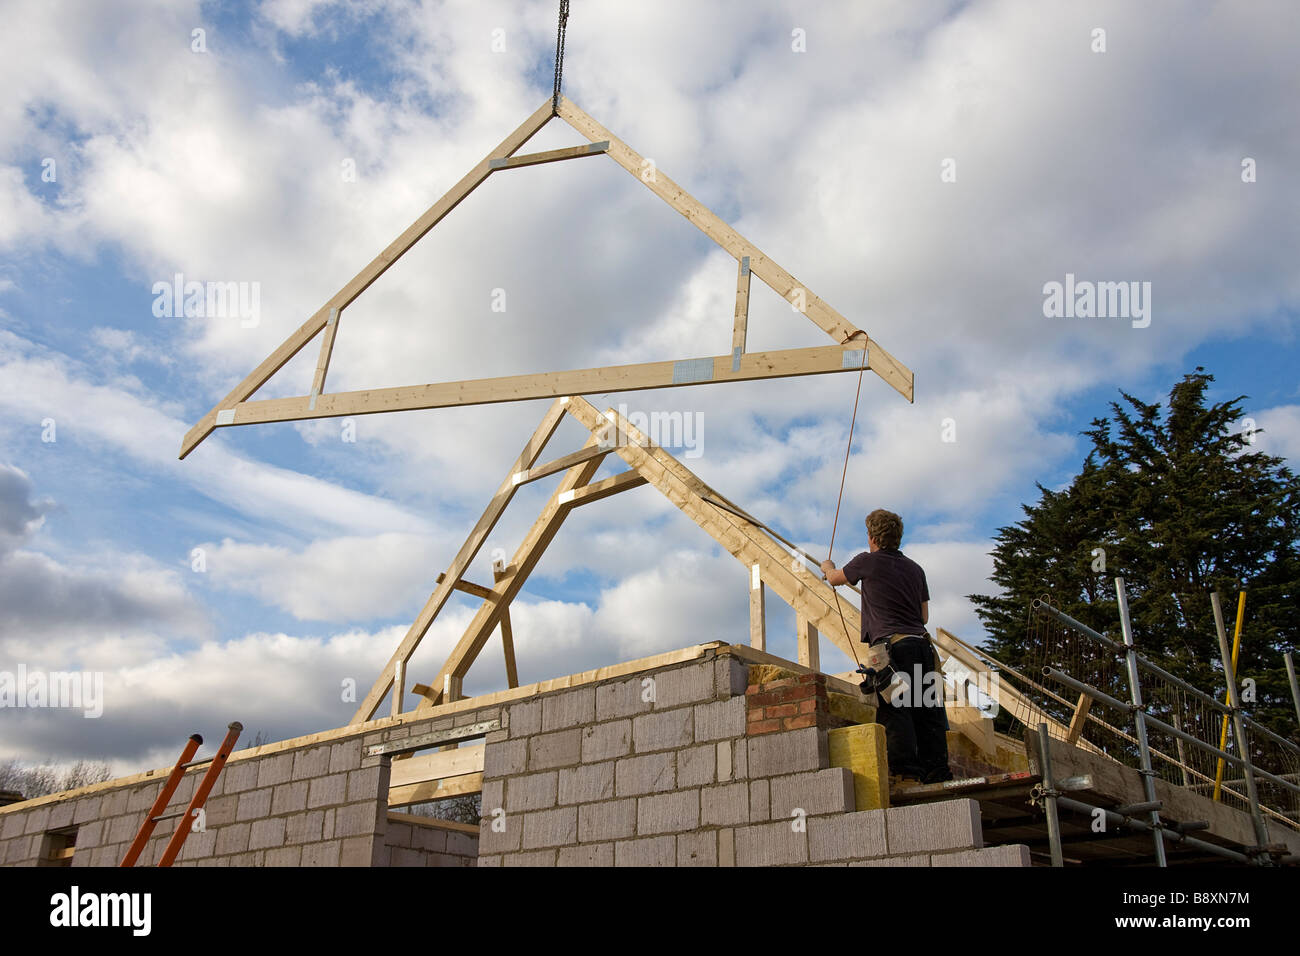 Timber attic roofing truss being lowered into position on roof of new house. - Stock Image